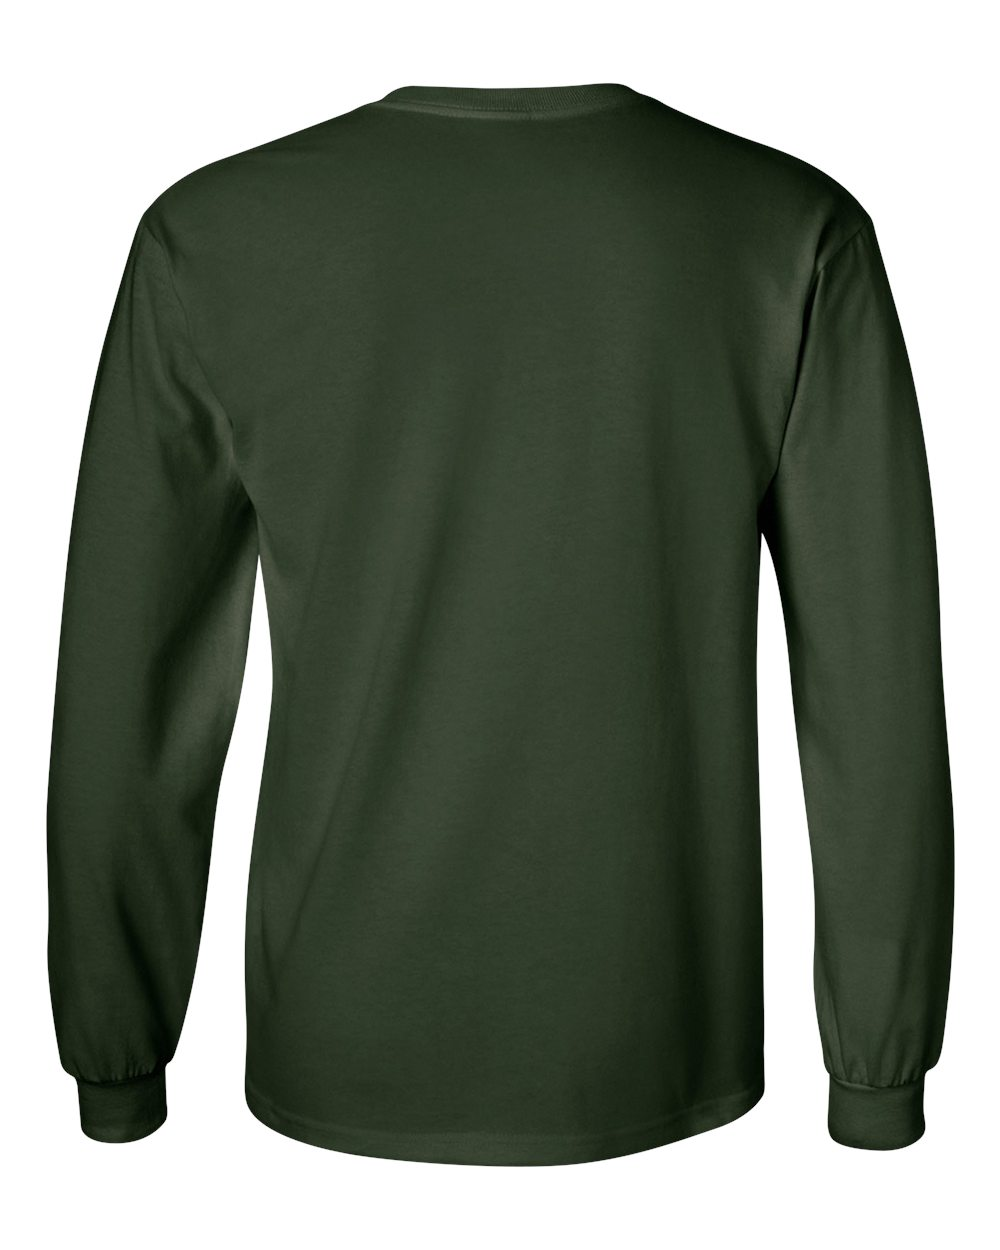 Gildan-Men-039-s-Ultra-Cotton-6-oz-Long-Sleeve-T-Shirt-G240-S-5XL thumbnail 32